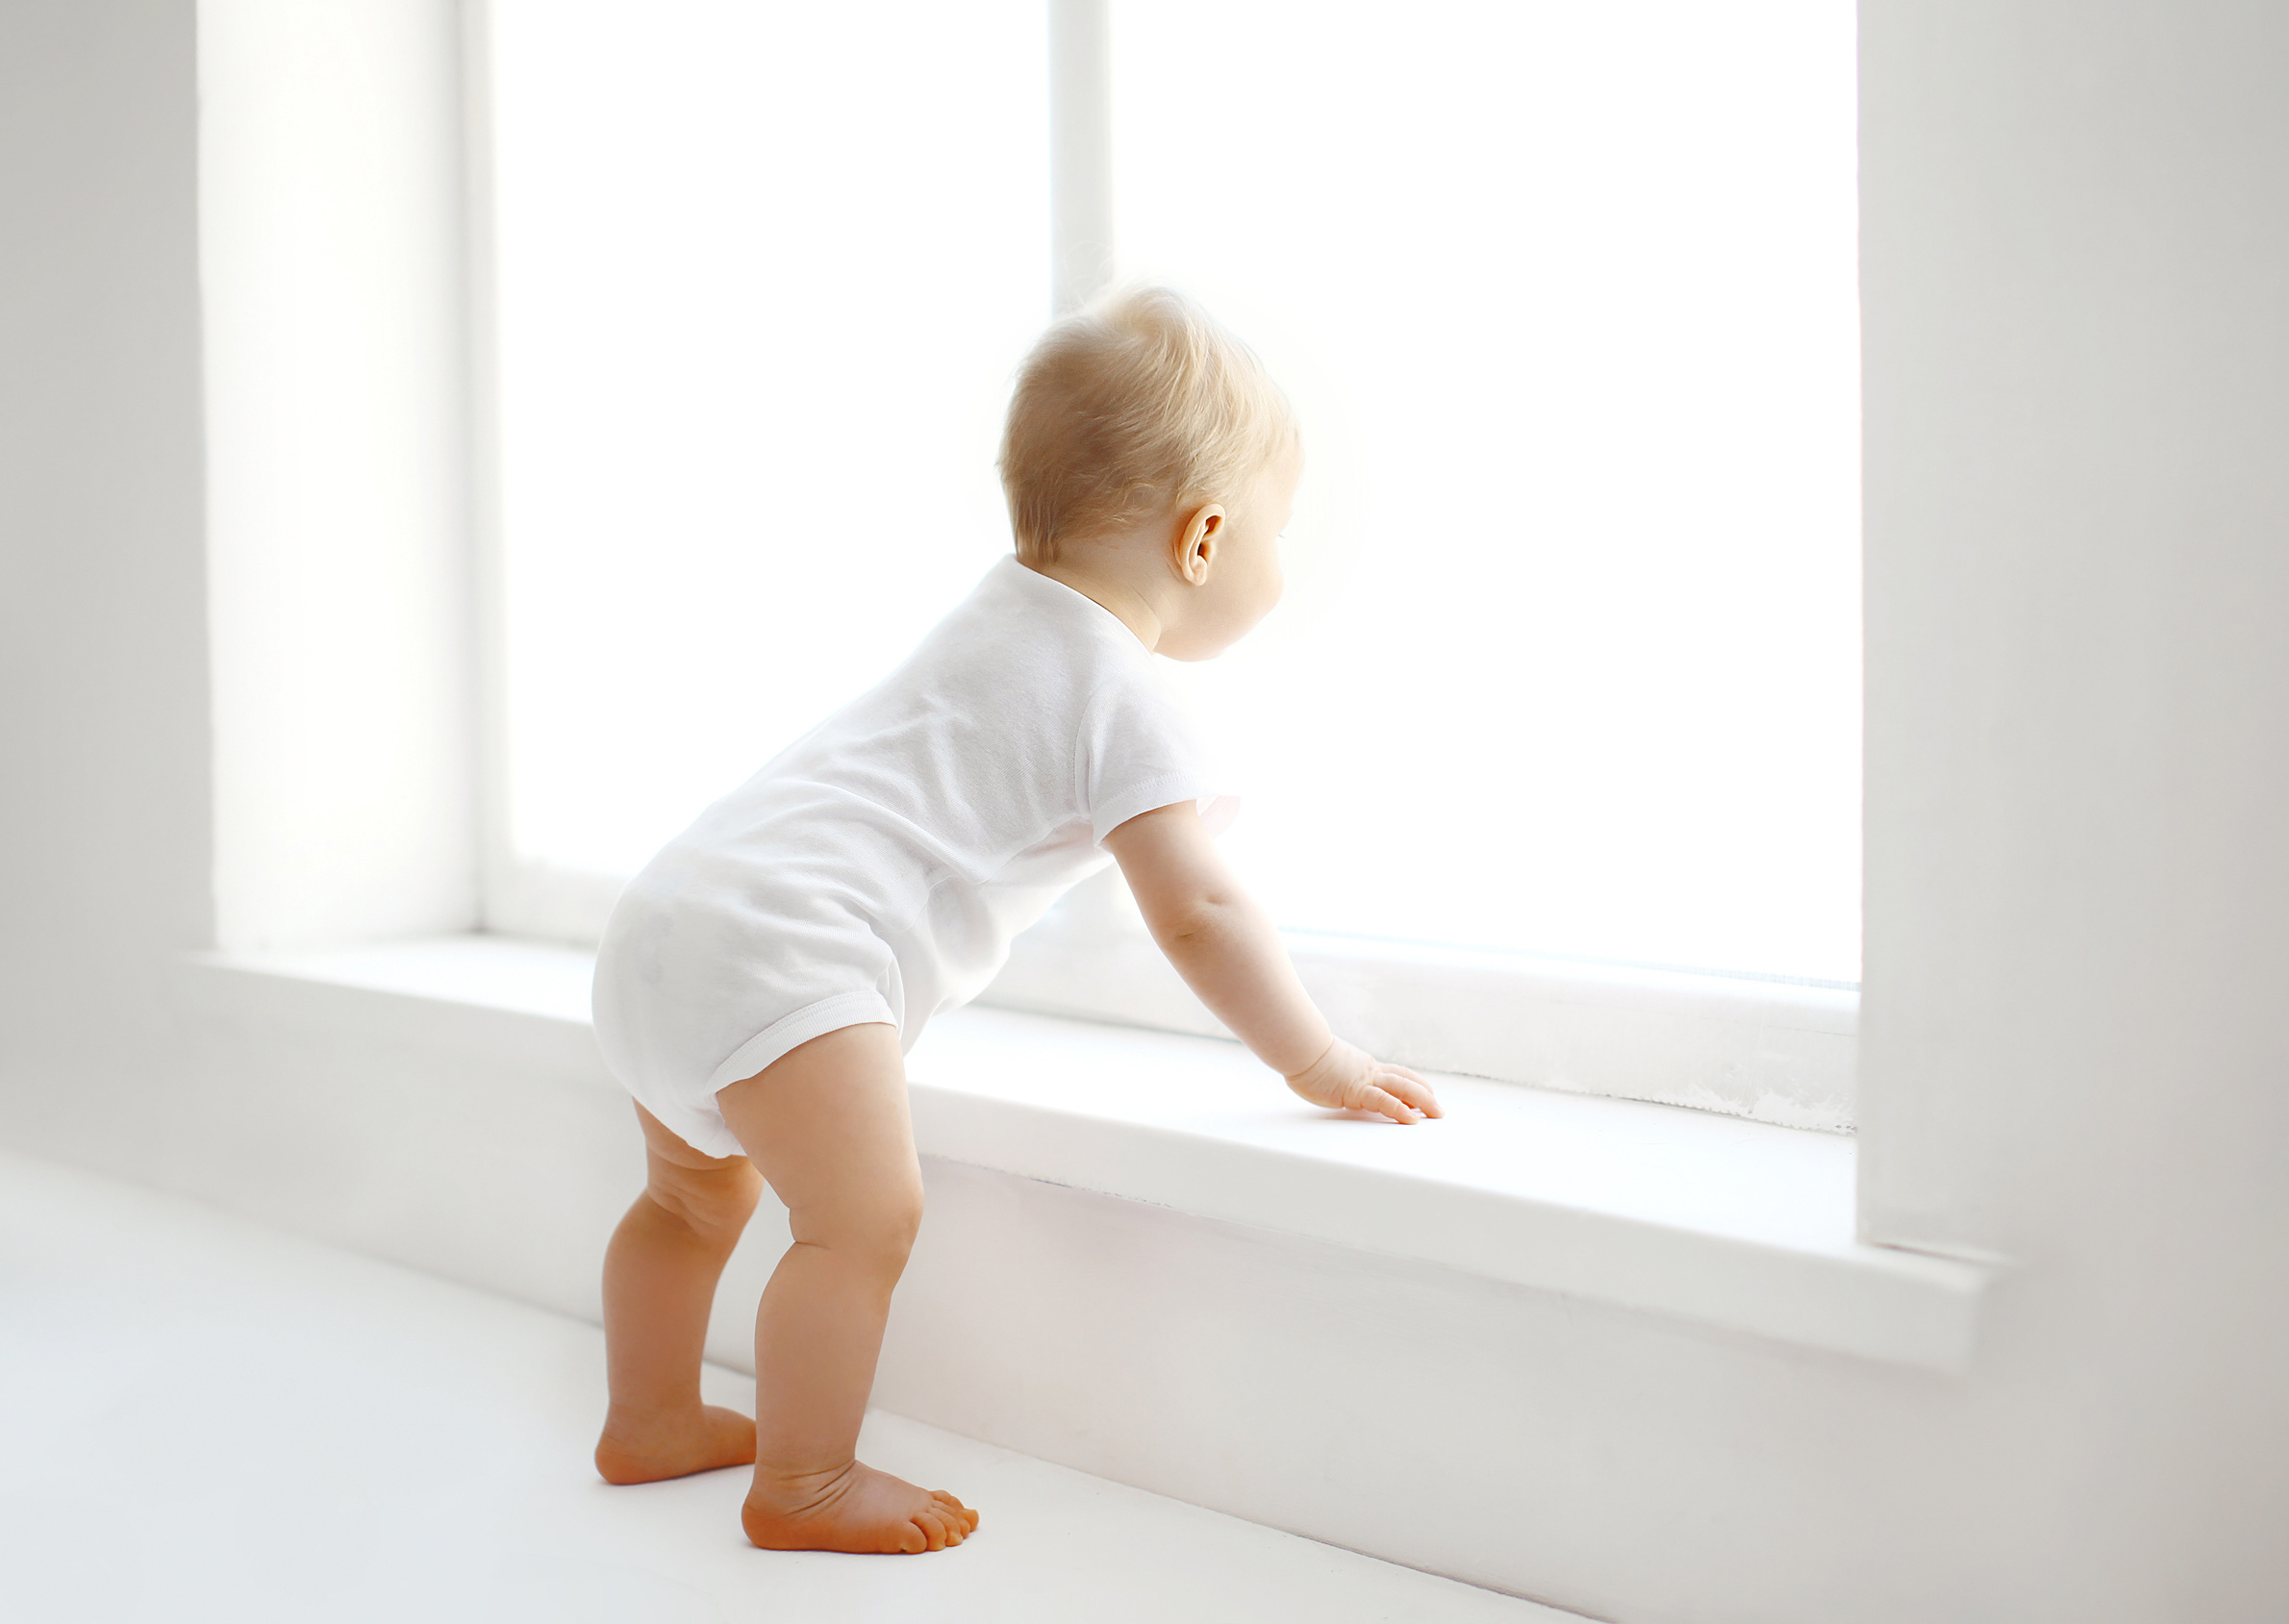 How to baby proof windows using window guards and window stops.